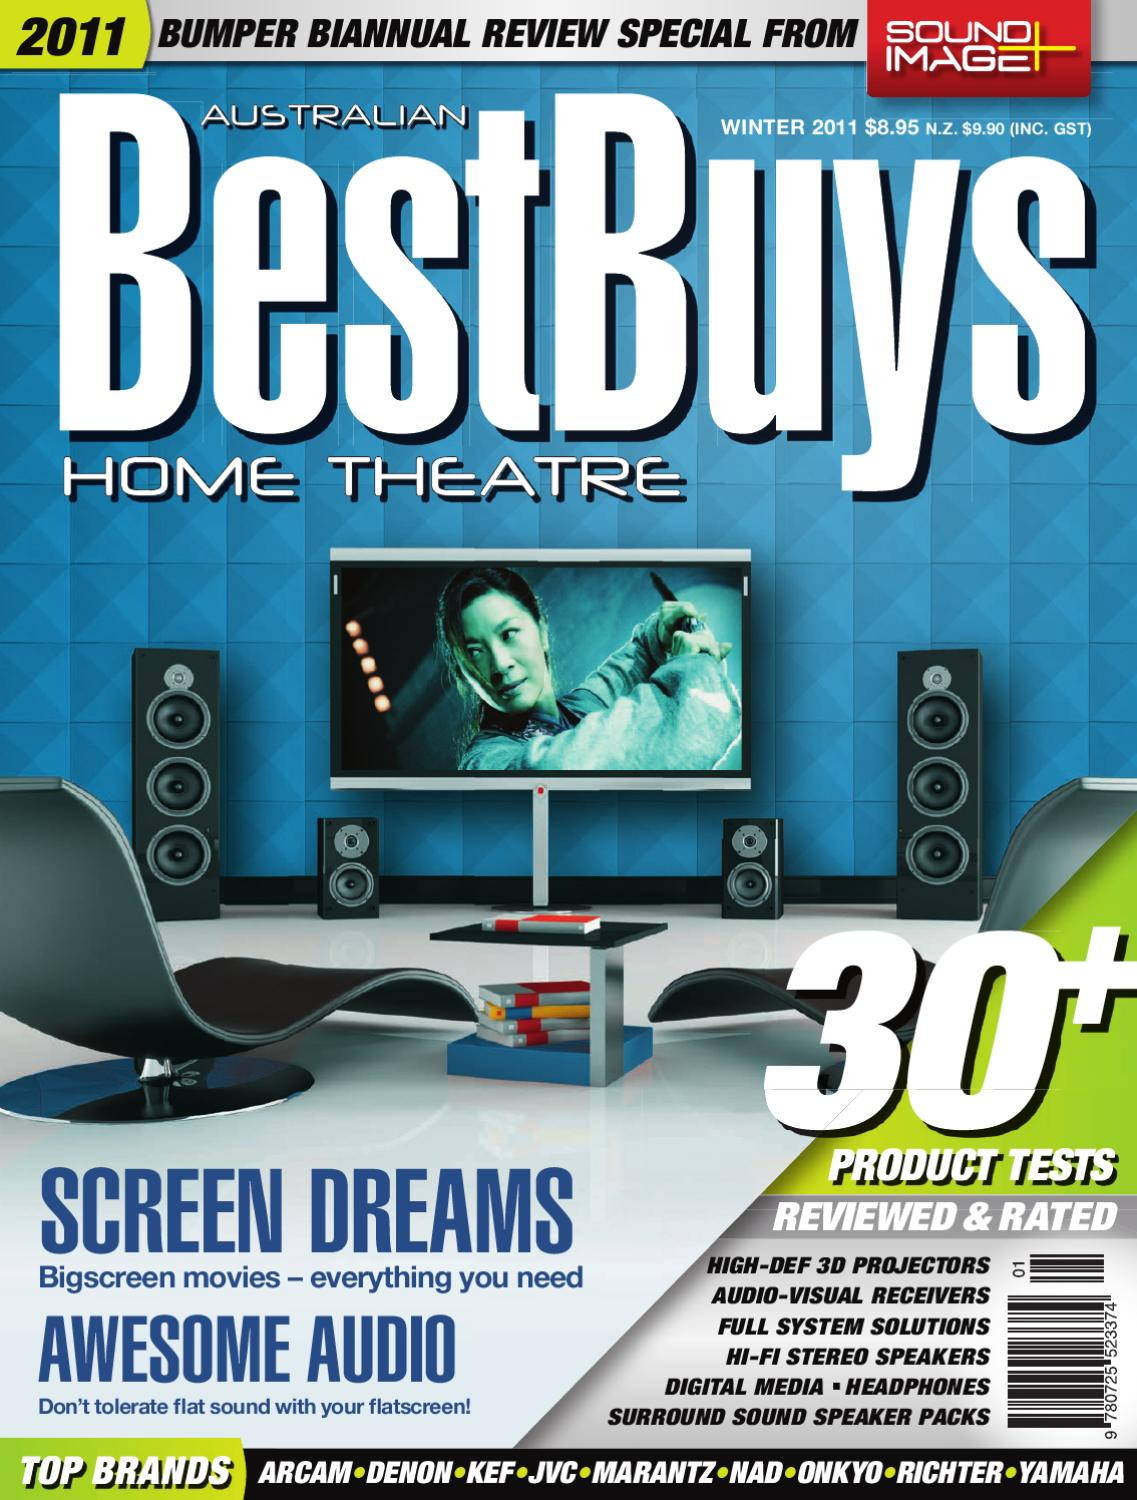 Best Buys Home Theatre Winter 2011 by nextmedia Pty Ltd - issuu